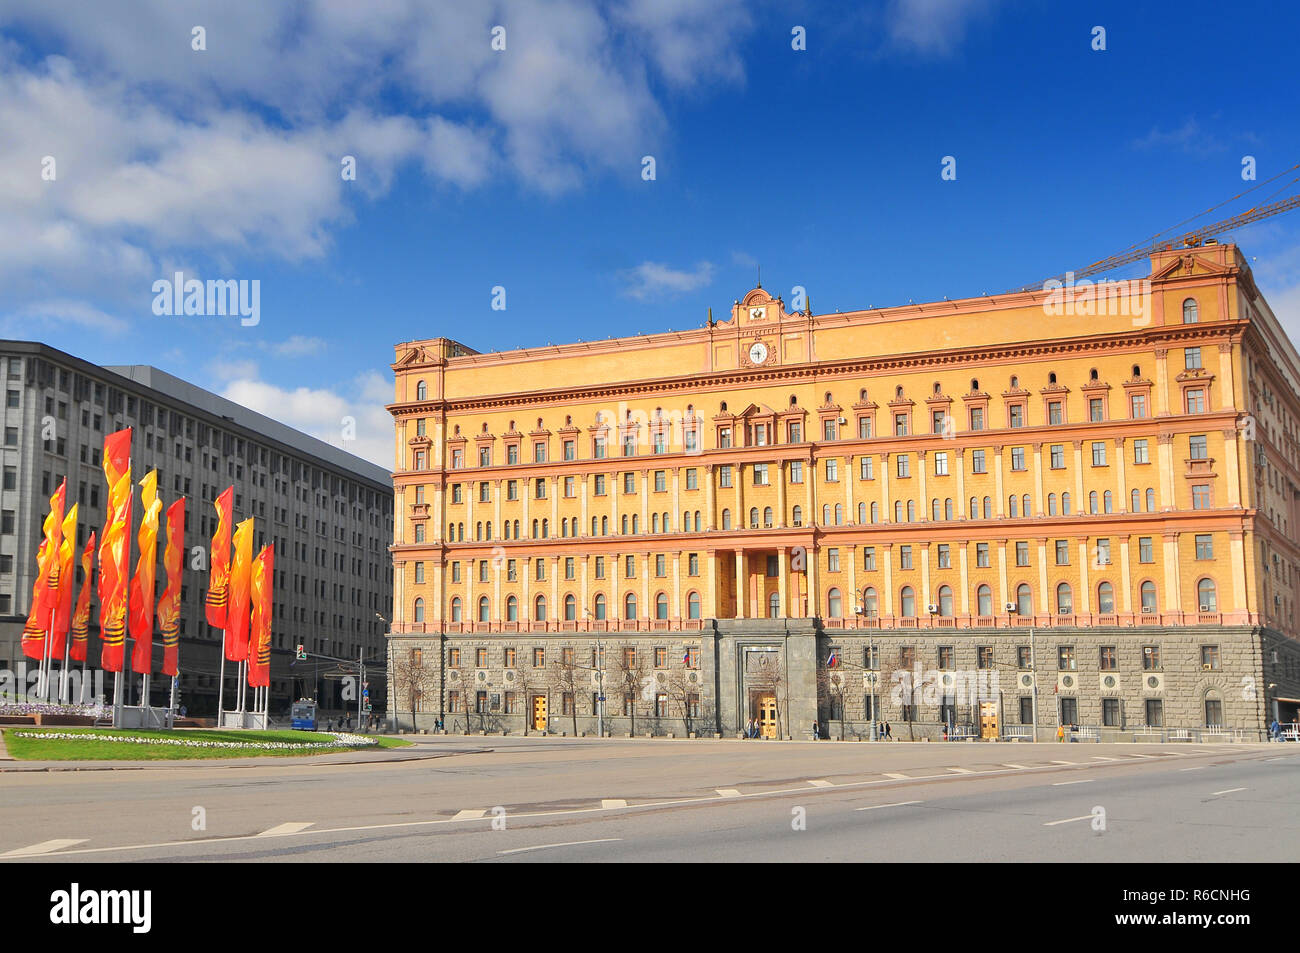 Russia, Moscow, The Lubyanka, Headquarters Of The Kgb And Affiliated Prison On Lubyanka Square In Moscow, Russia - Stock Image